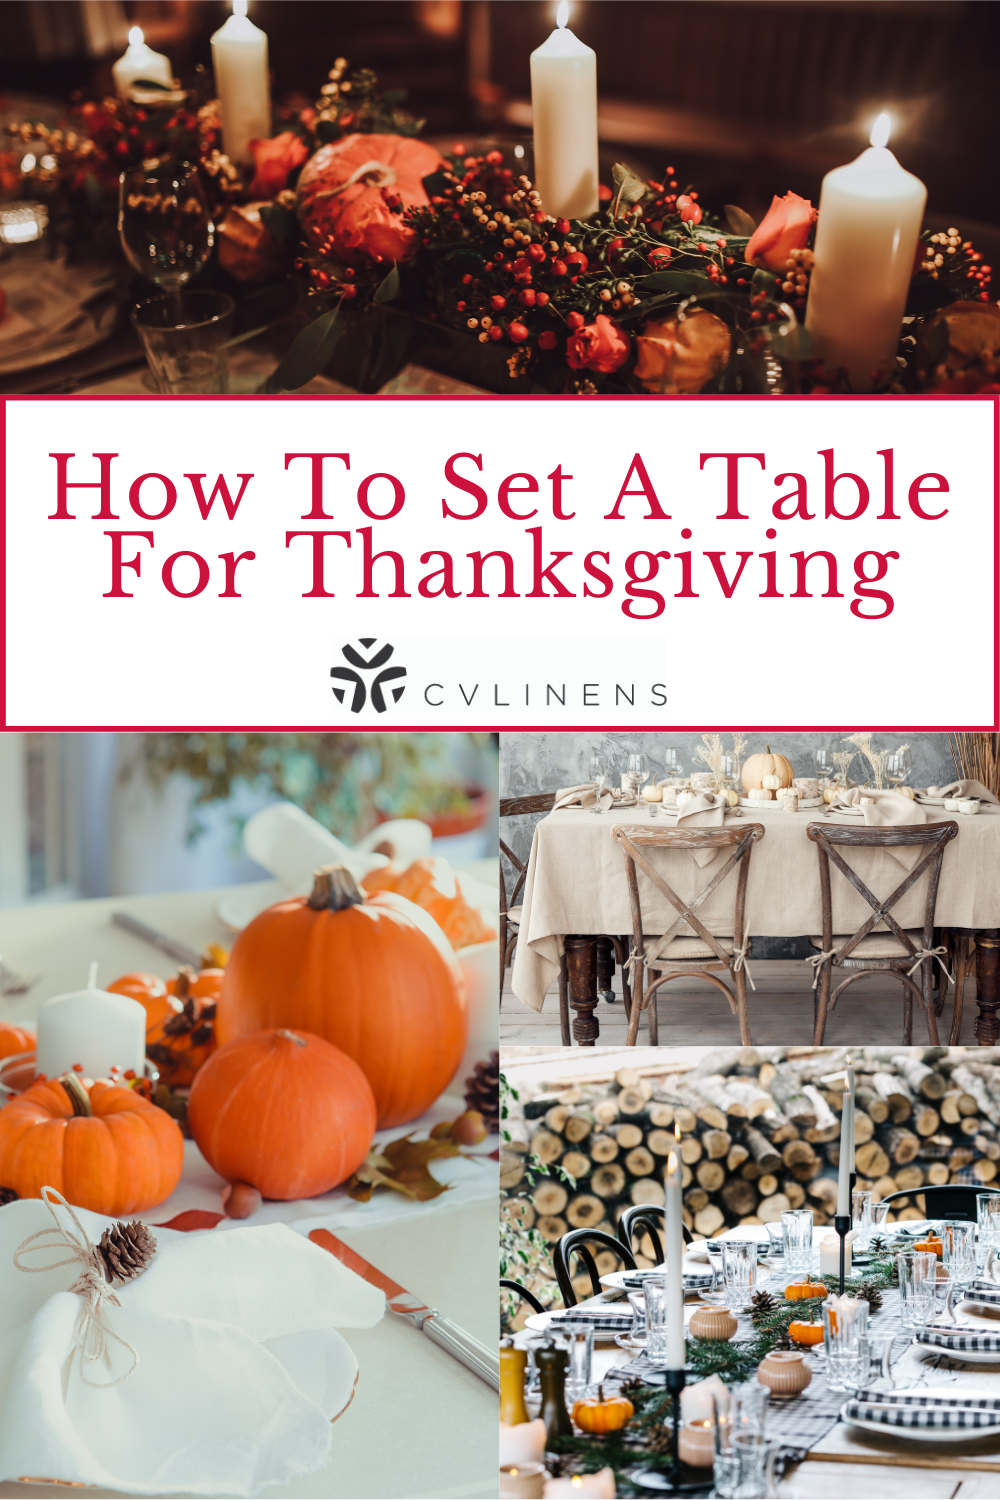 How to set a table for thanksgiving Pinterest pin.